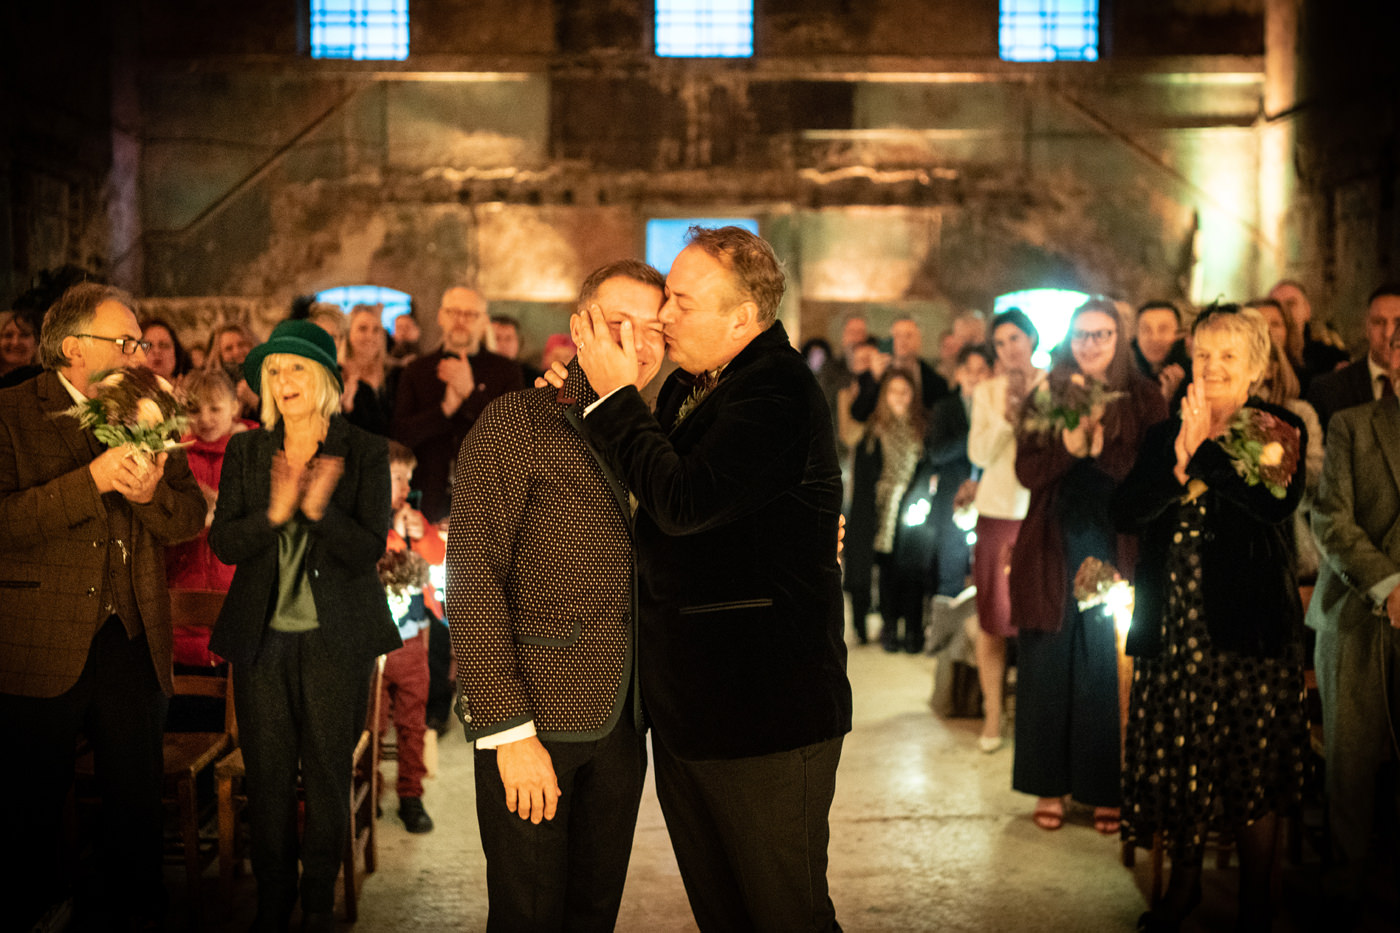 Two grooms kiss at The Asylum Chapel London